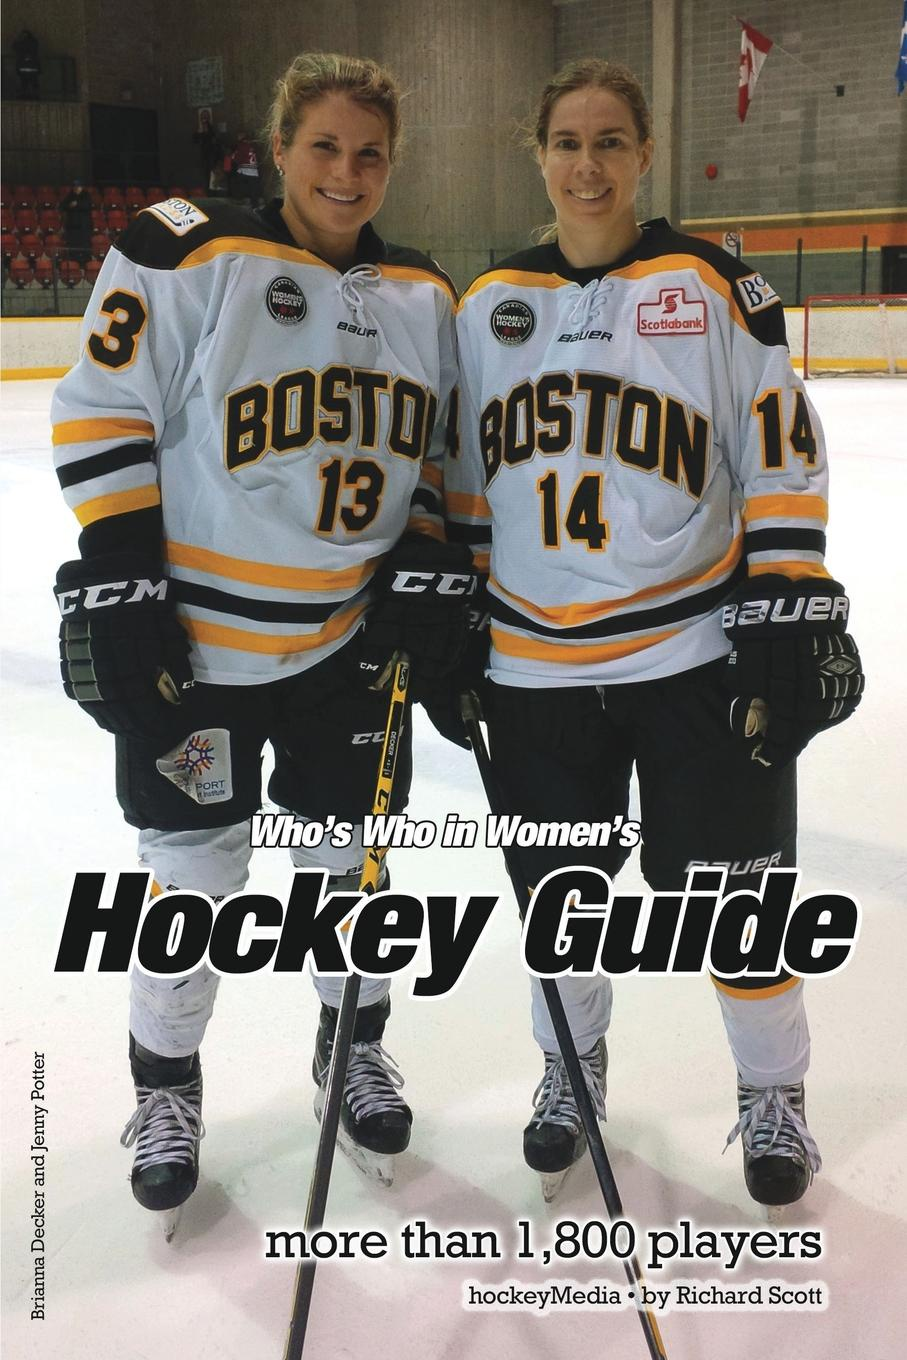 Richard Scott (Past Edition) Whos Who in Womens Hockey Guide 2016